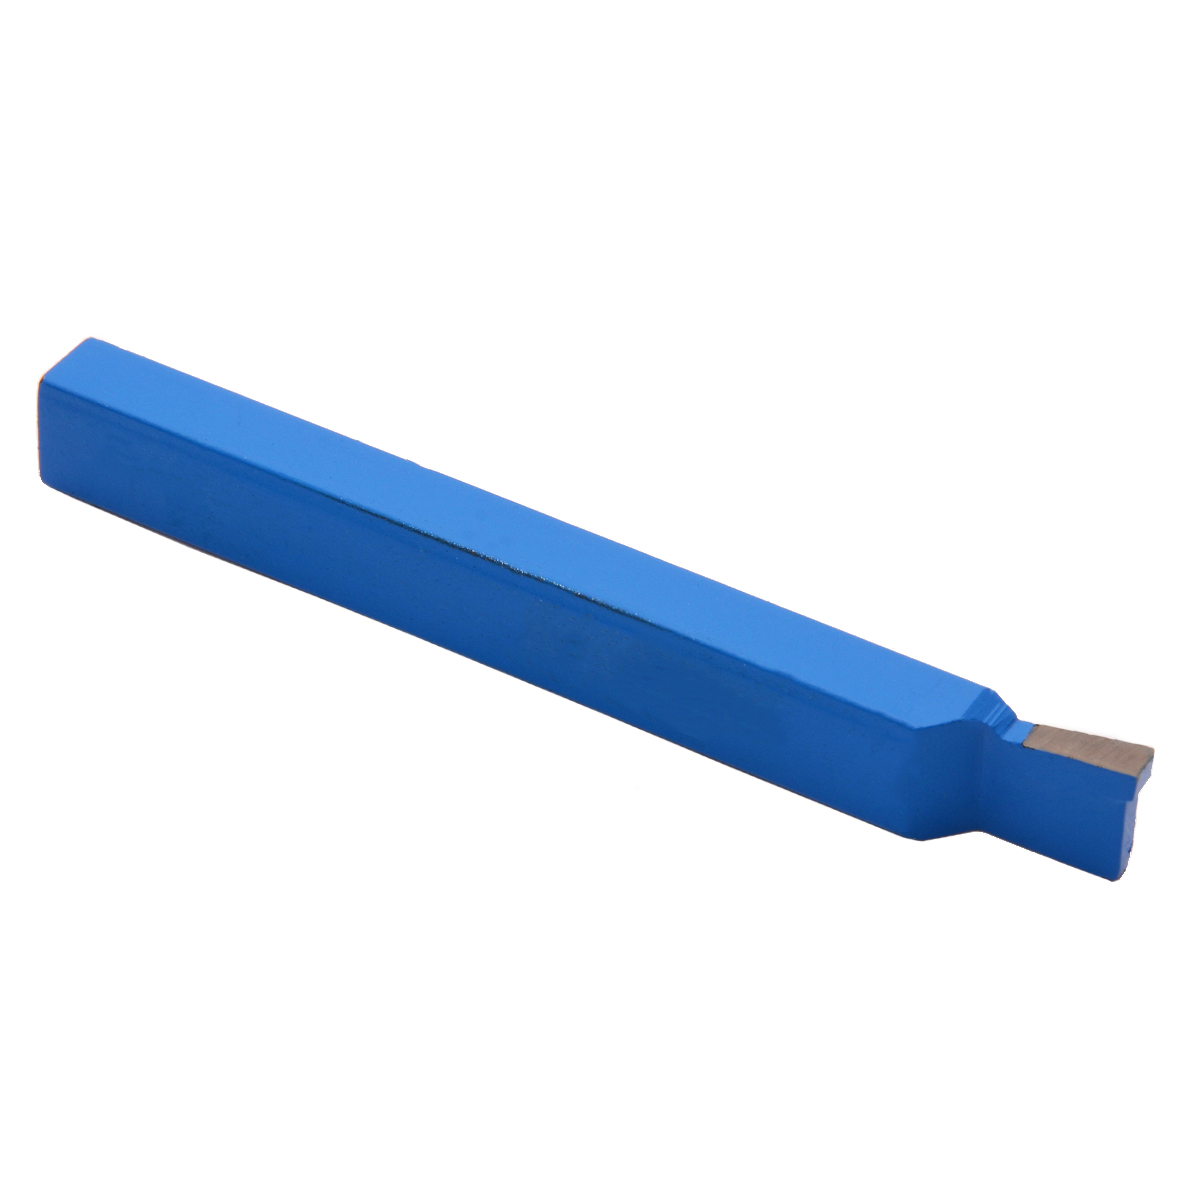 1Pcs Blue DIN4981 Carbide-Tipped Lathe Tool 12x8mm Grooving Cut-off Tools High Hardness Lathe Turning Tool